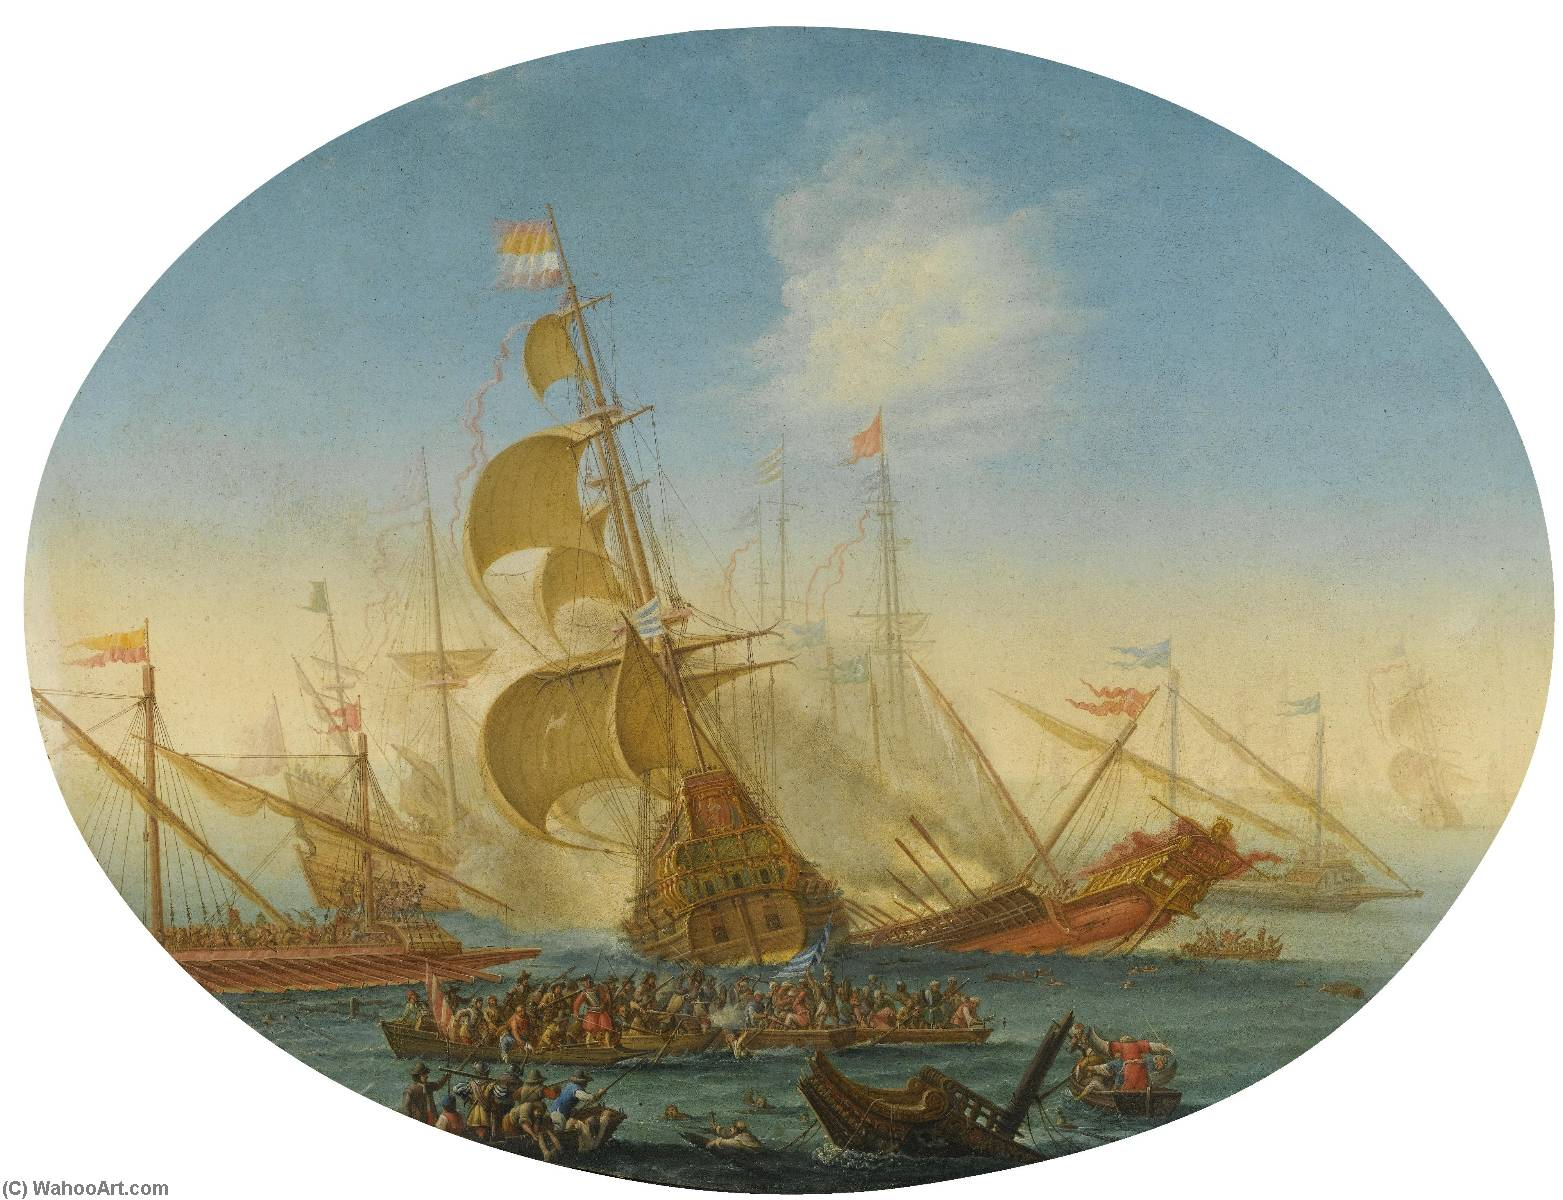 a naval battle between turks and christians, Copper by Orazio Grevenbroeck